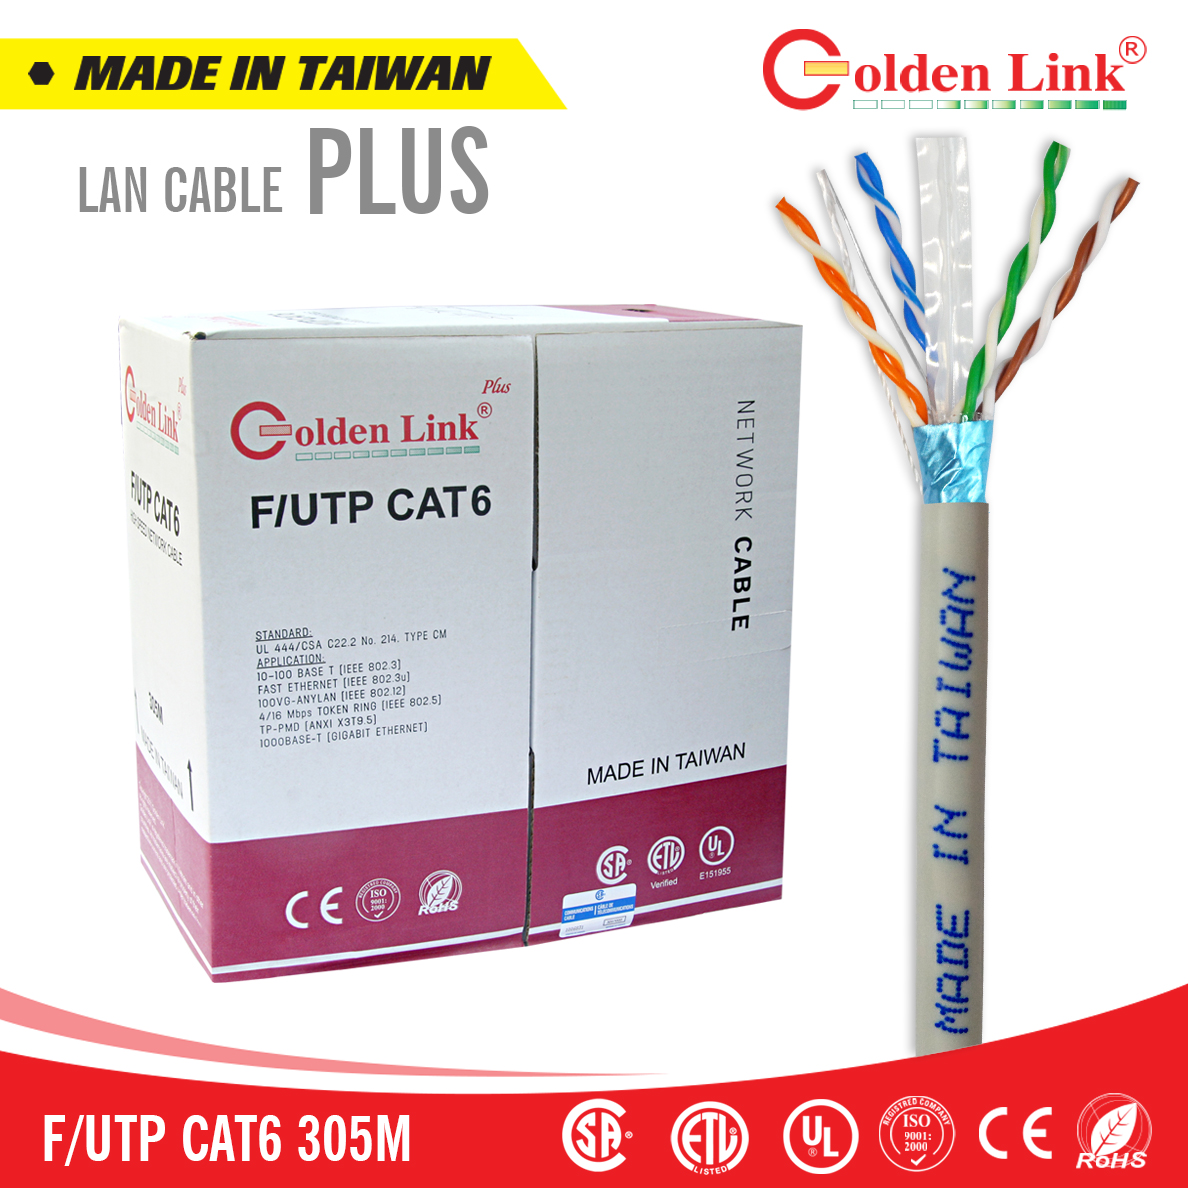 Cáp mạng CAT 6 F/UTP Golden Link Plus 305m Made in Taiwan